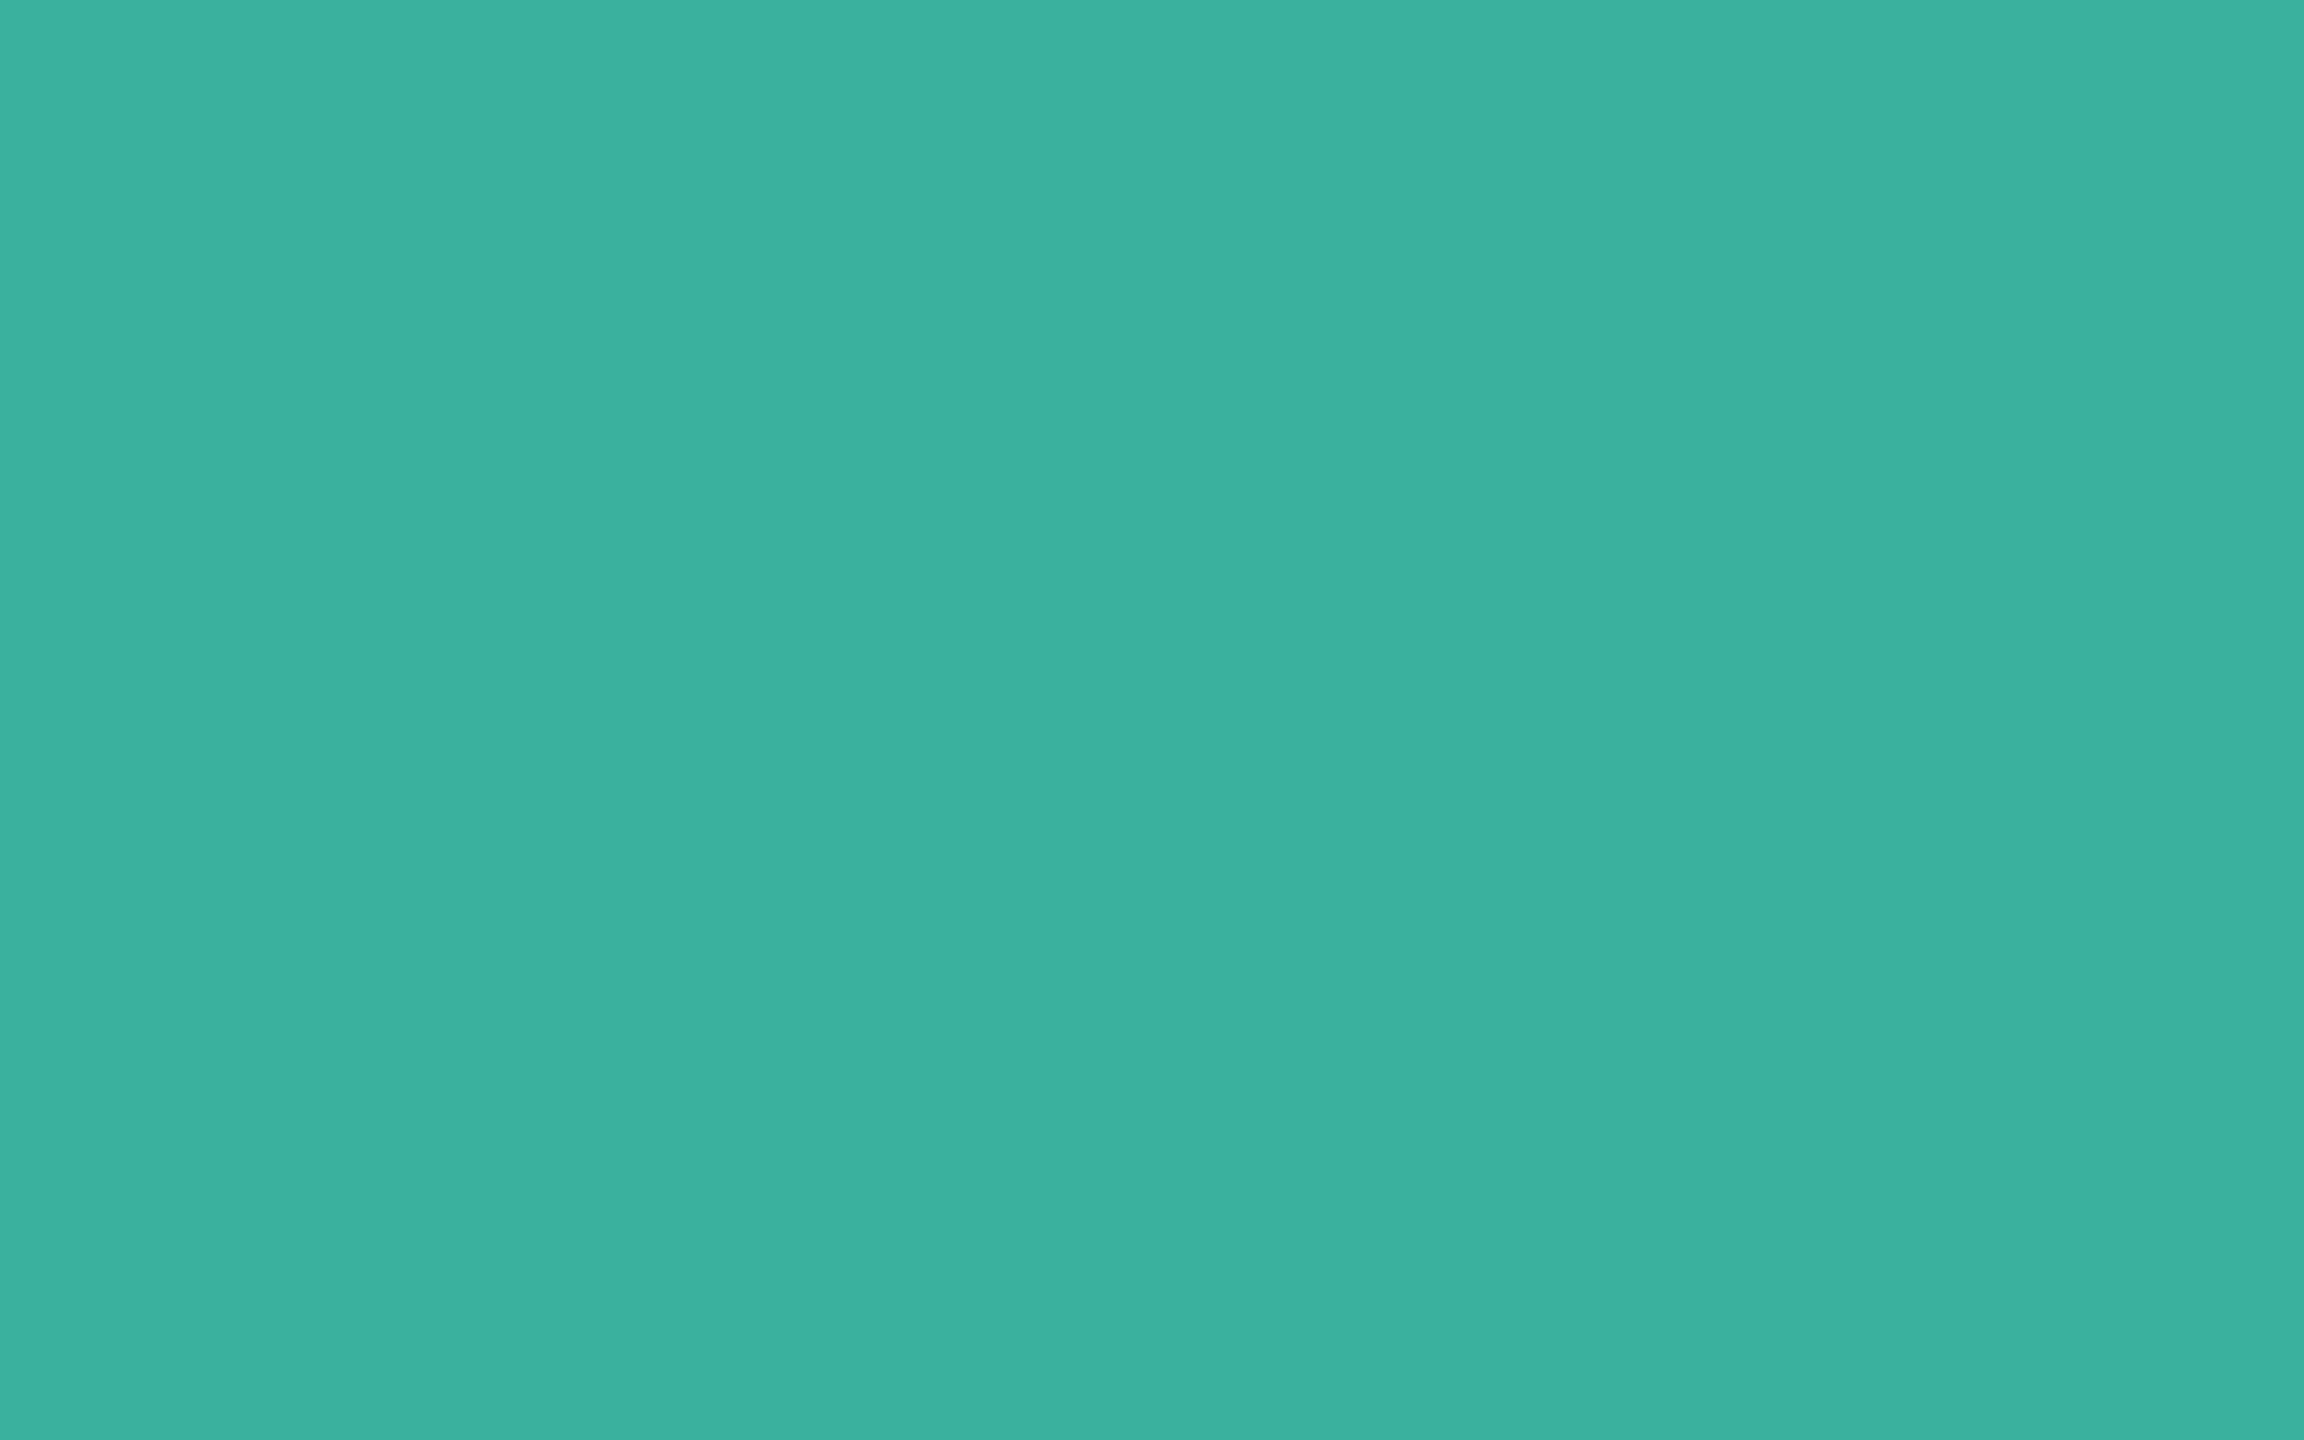 2304x1440 Keppel Solid Color Background